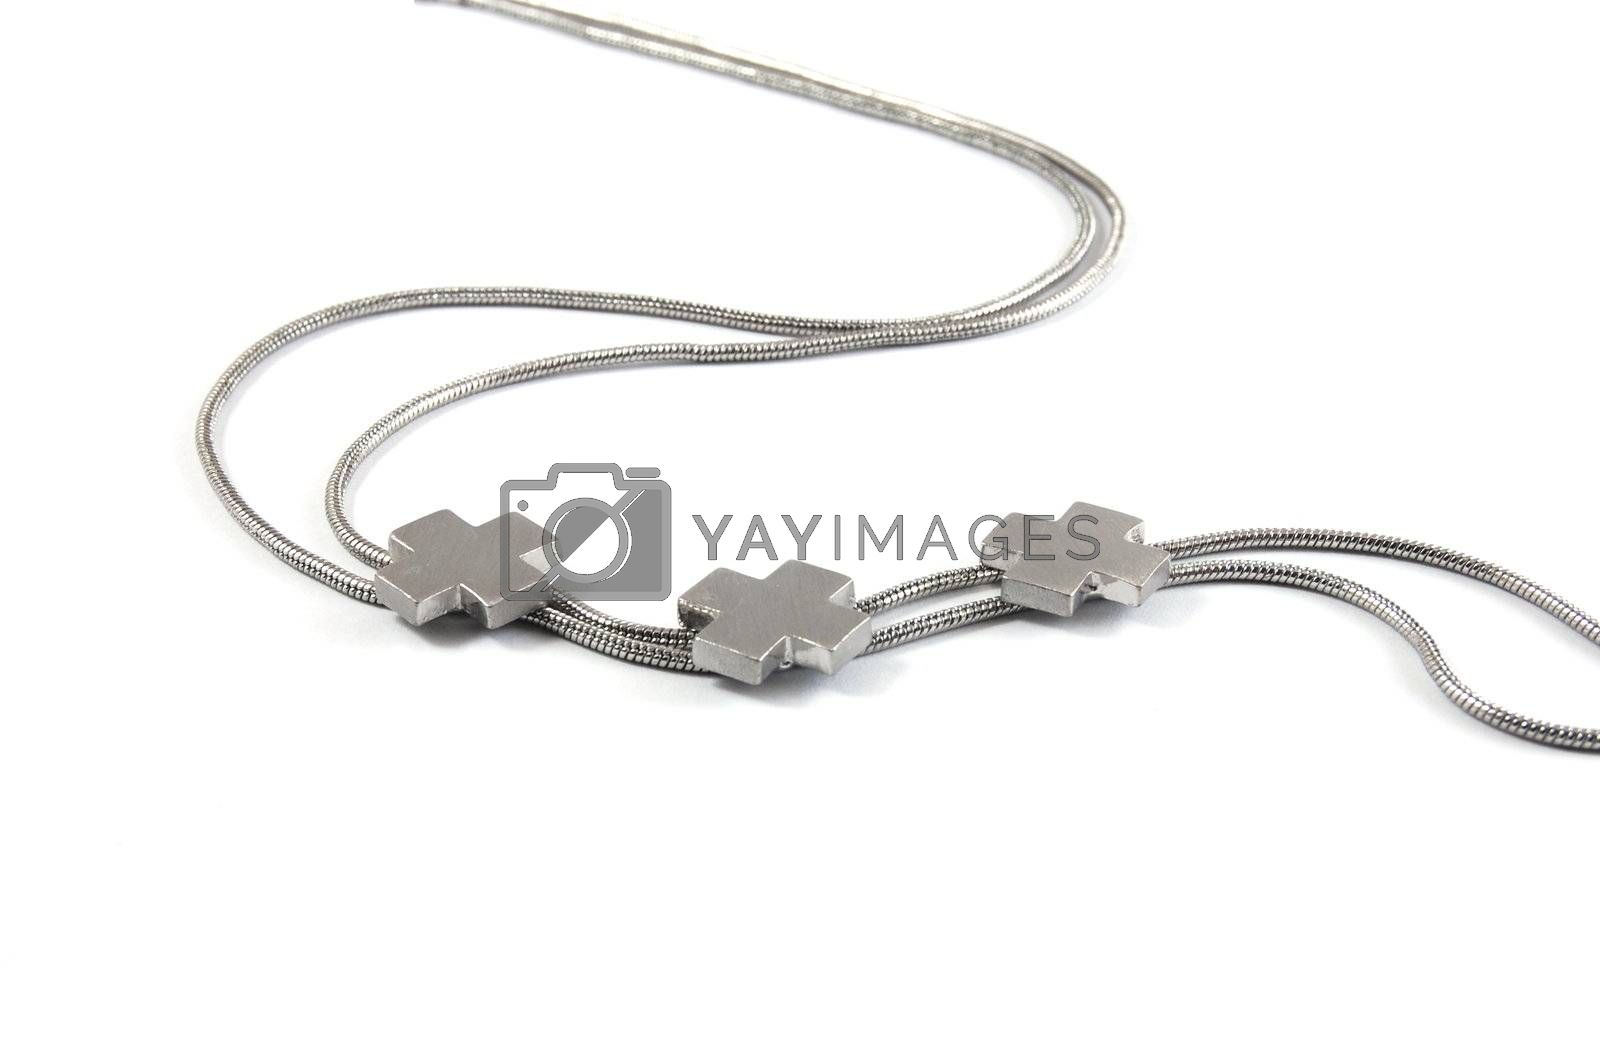 Royalty free image of necklace by gunnar3000